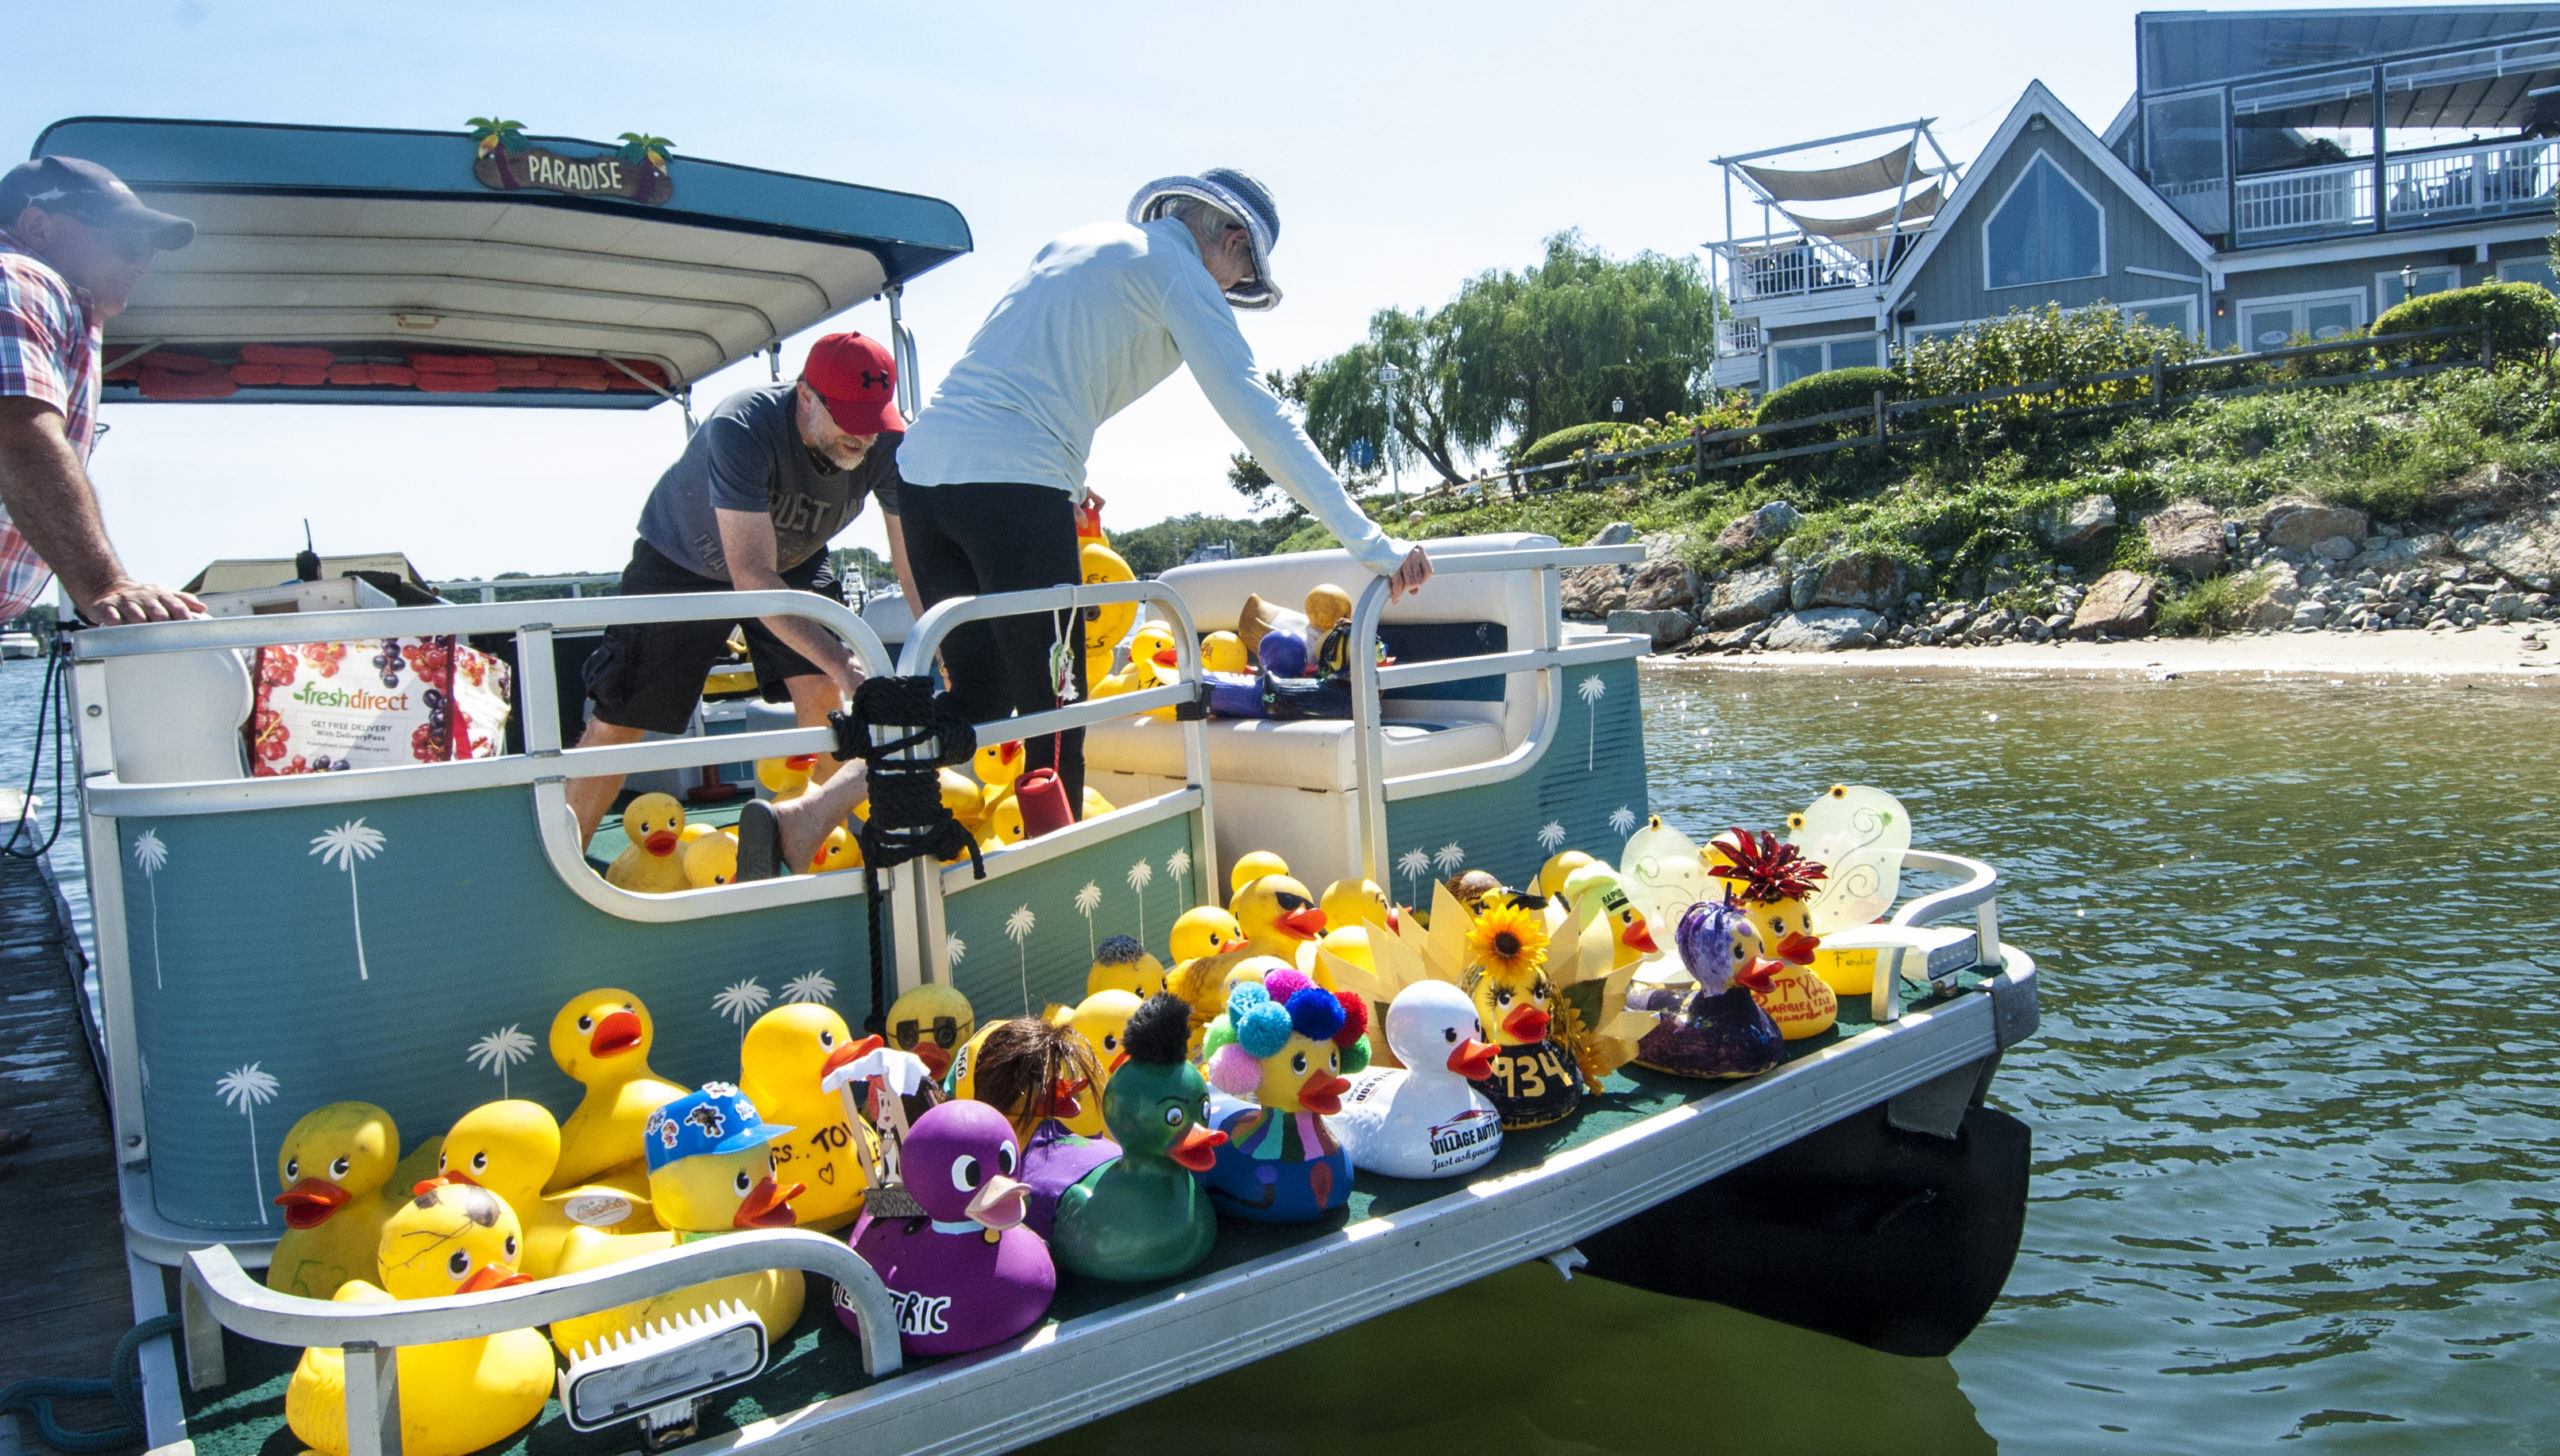 Ducks on deck to race at the Hampton Bays civic Association Rubber Duck Race on Saturday afternoon.  COURTESY HAMPTON BAYS CIVIC ASSOCIATION